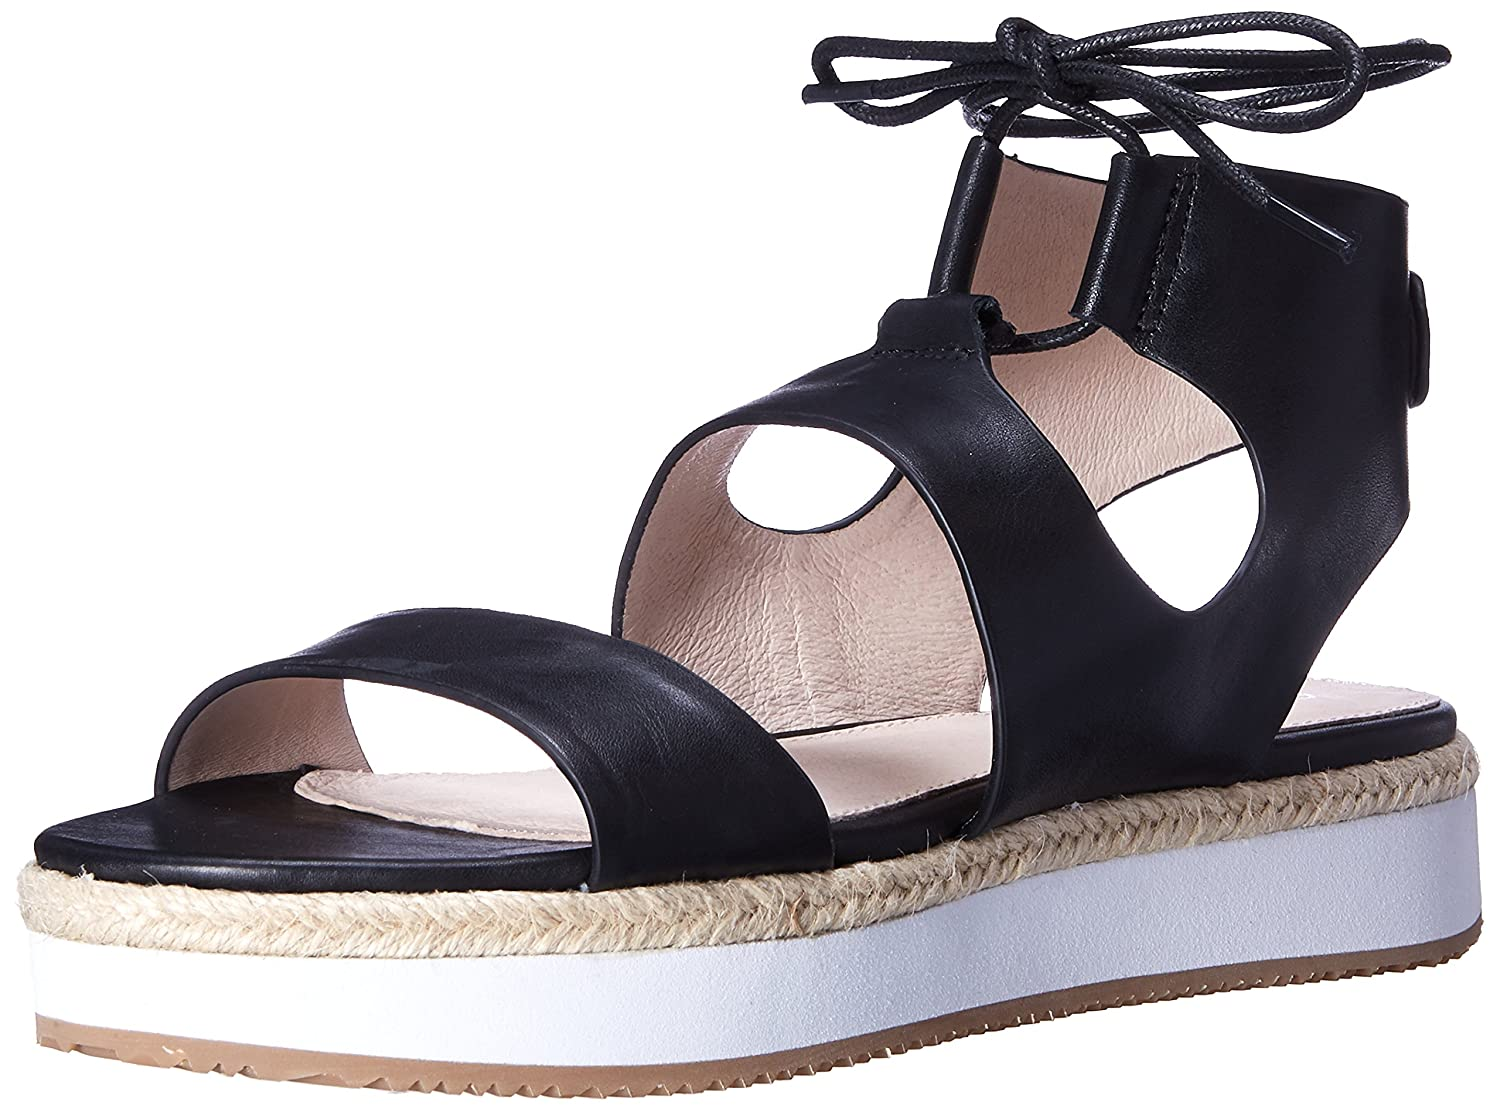 Shellys London Women's Hanley Platform Sandal B01CG209G4 39 EU/8.5 M US|Black